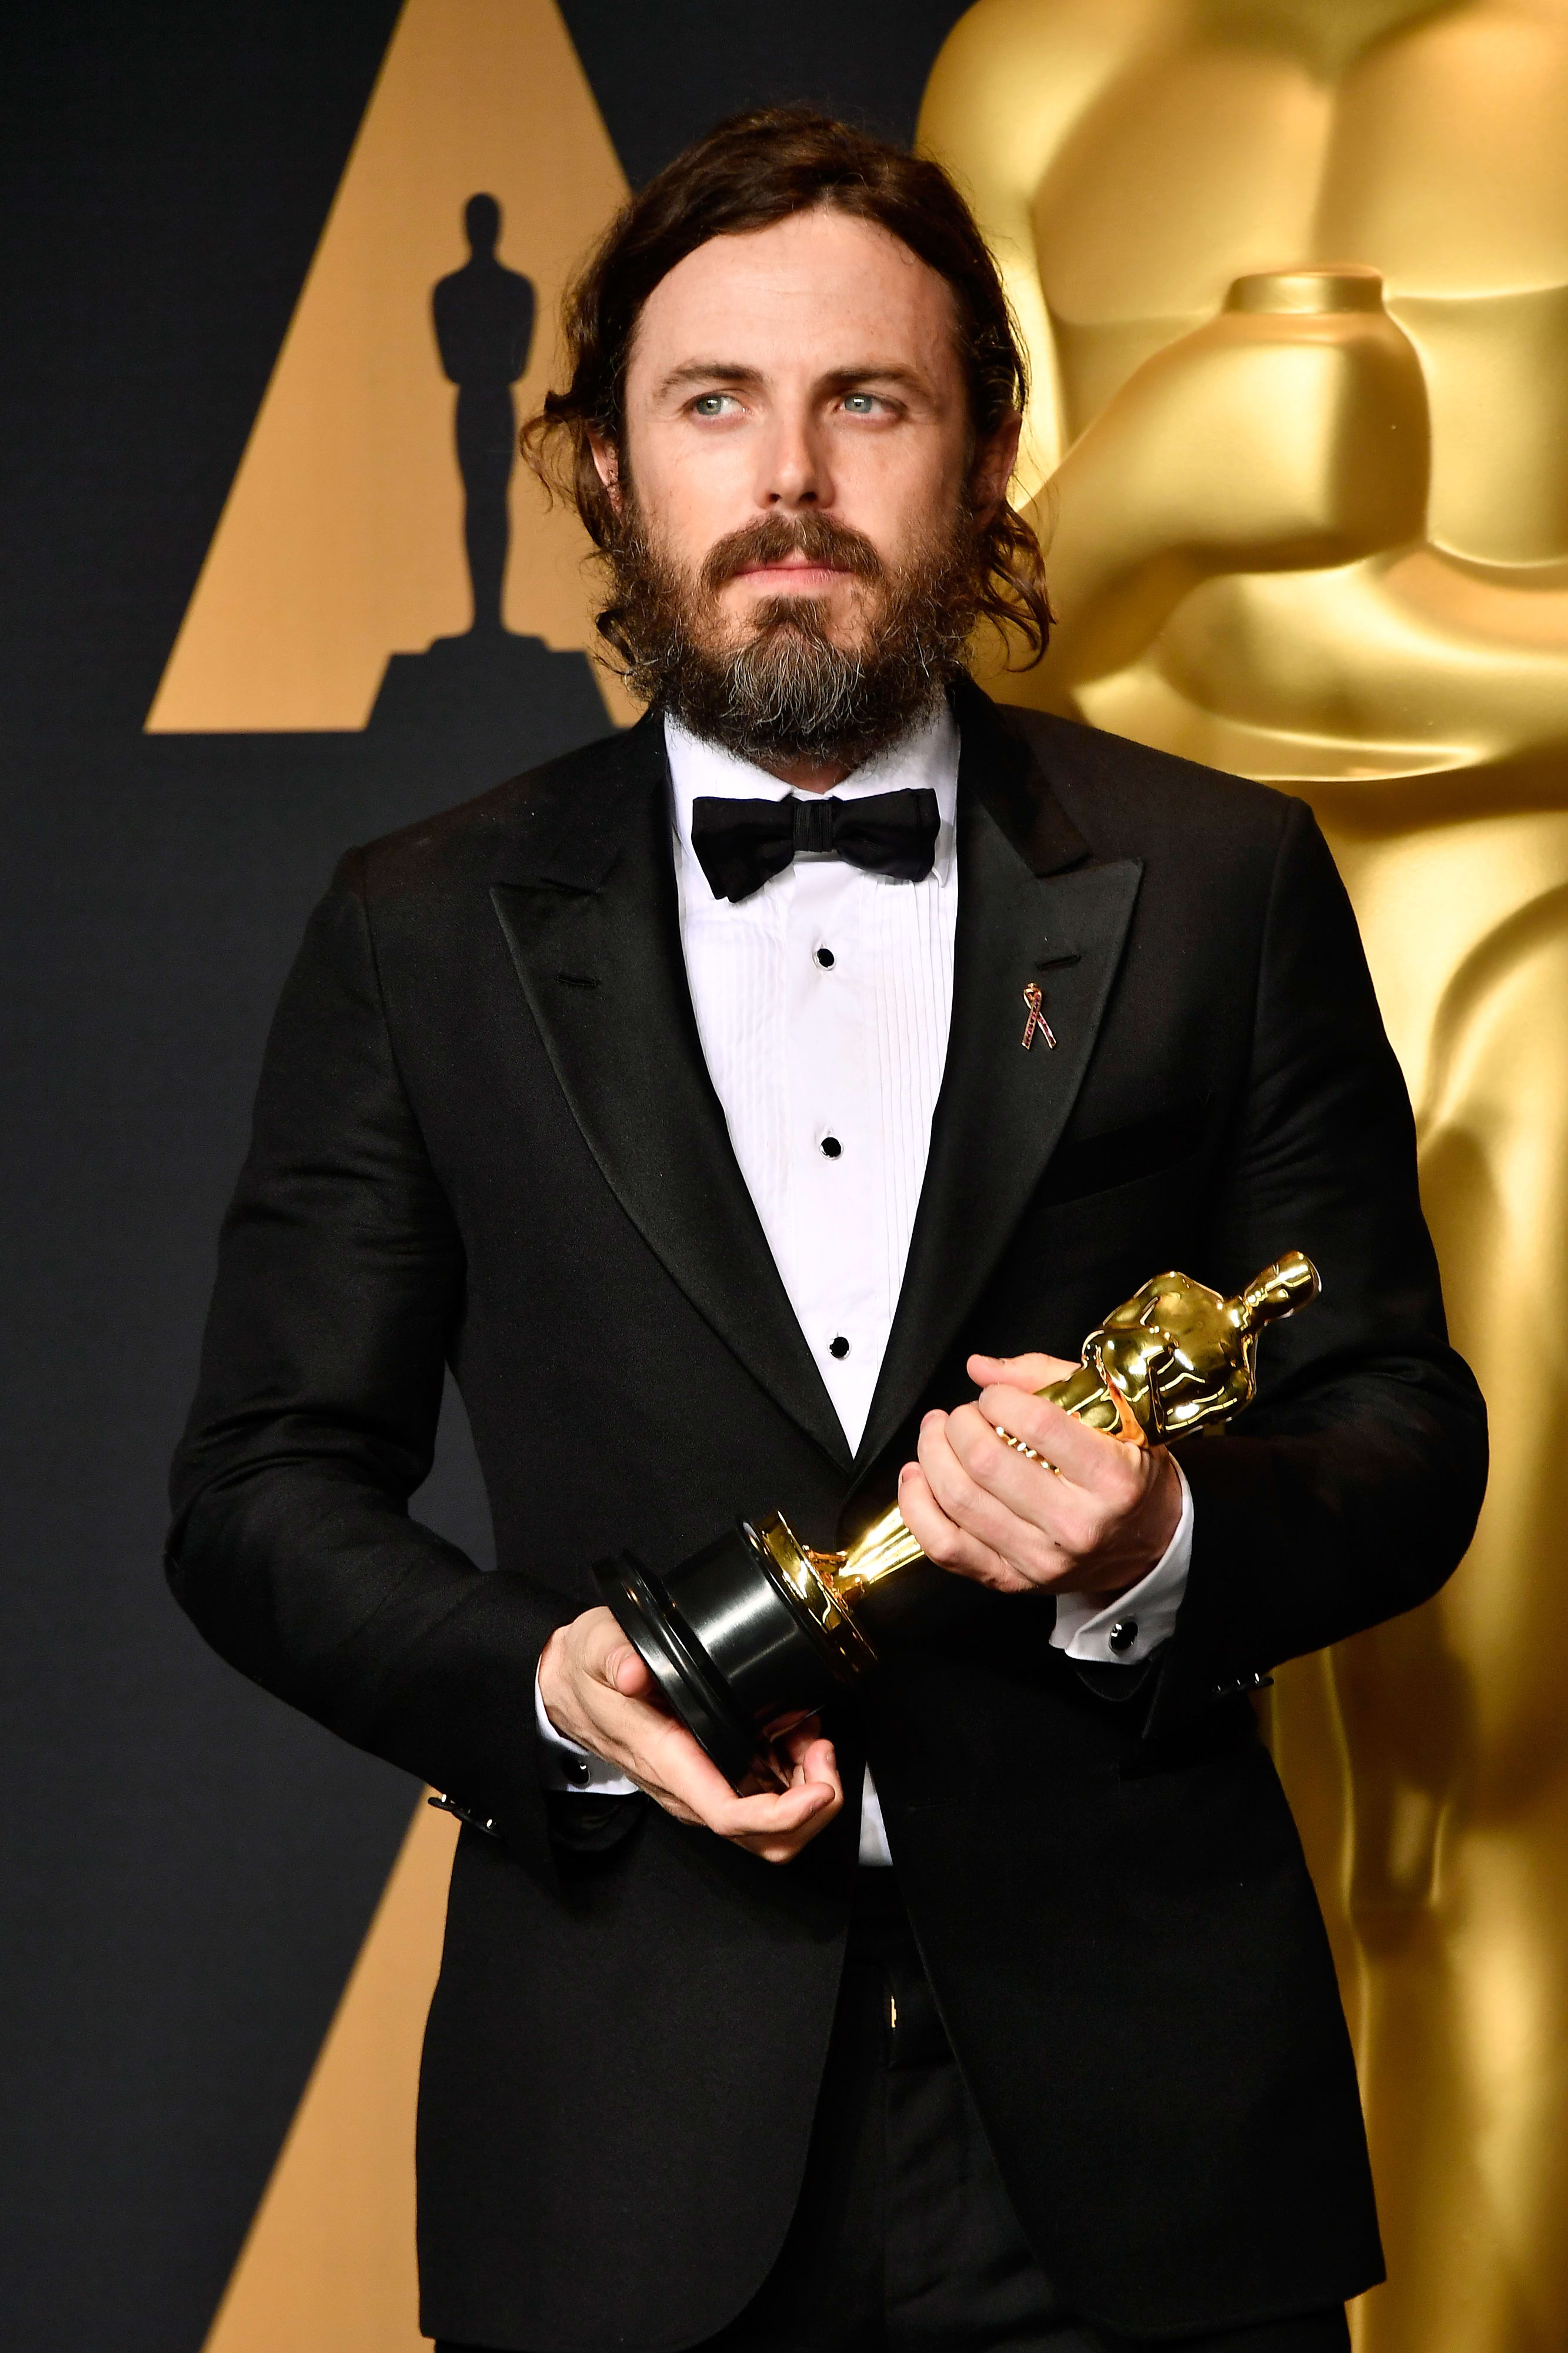 Casey Affleck Oscar Win Slammed By Brie Larson Twitter The Hollywood Gossip,Beauty And The Beast Location In France